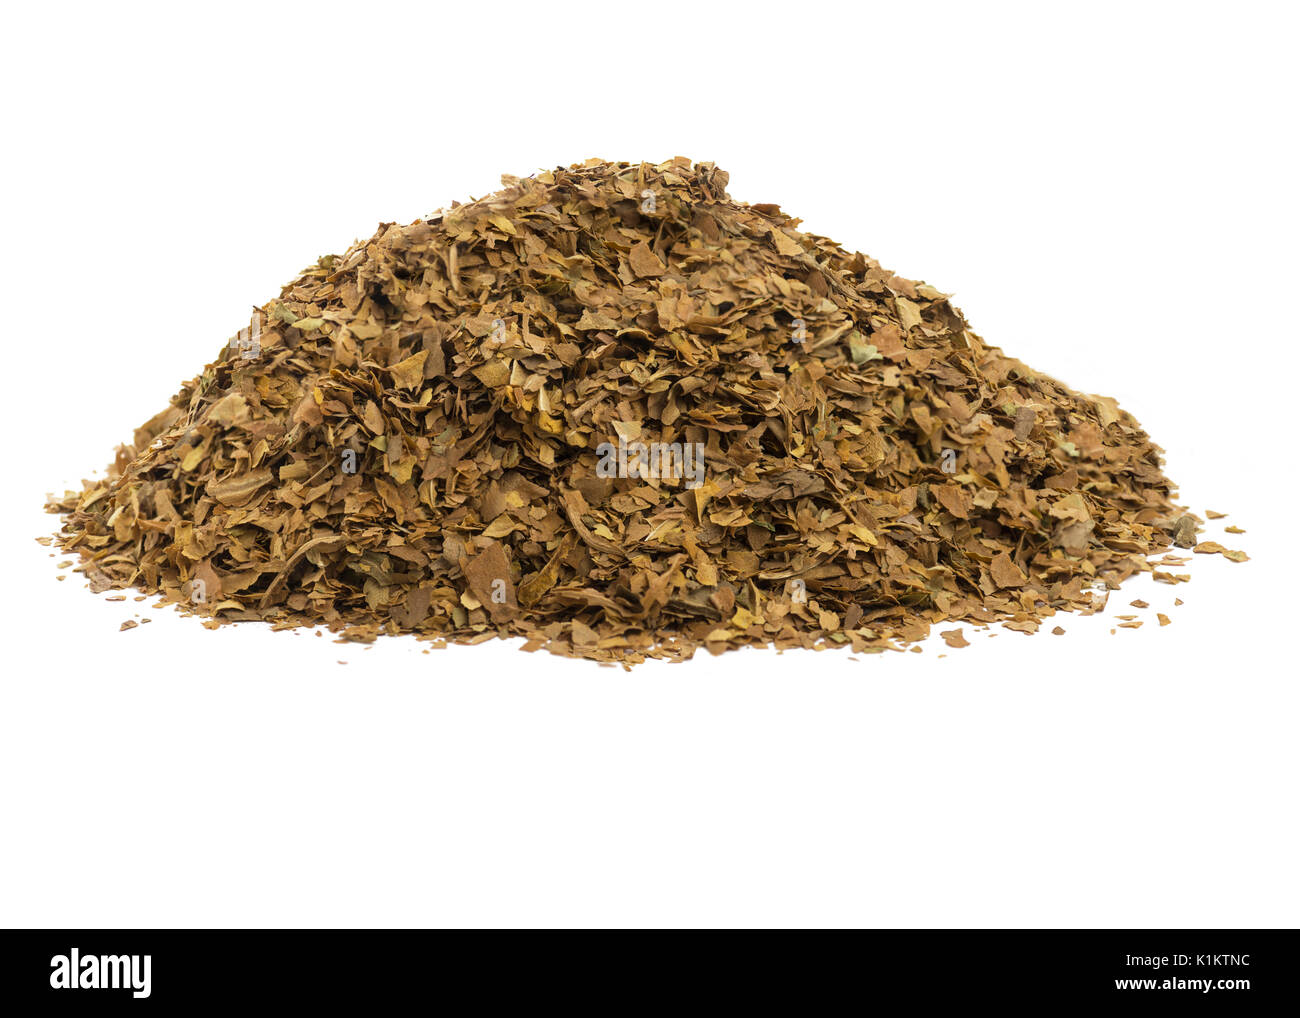 side view image a pile of unprocessed dried tobacco leaves, on a  white isolated background. - Stock Image